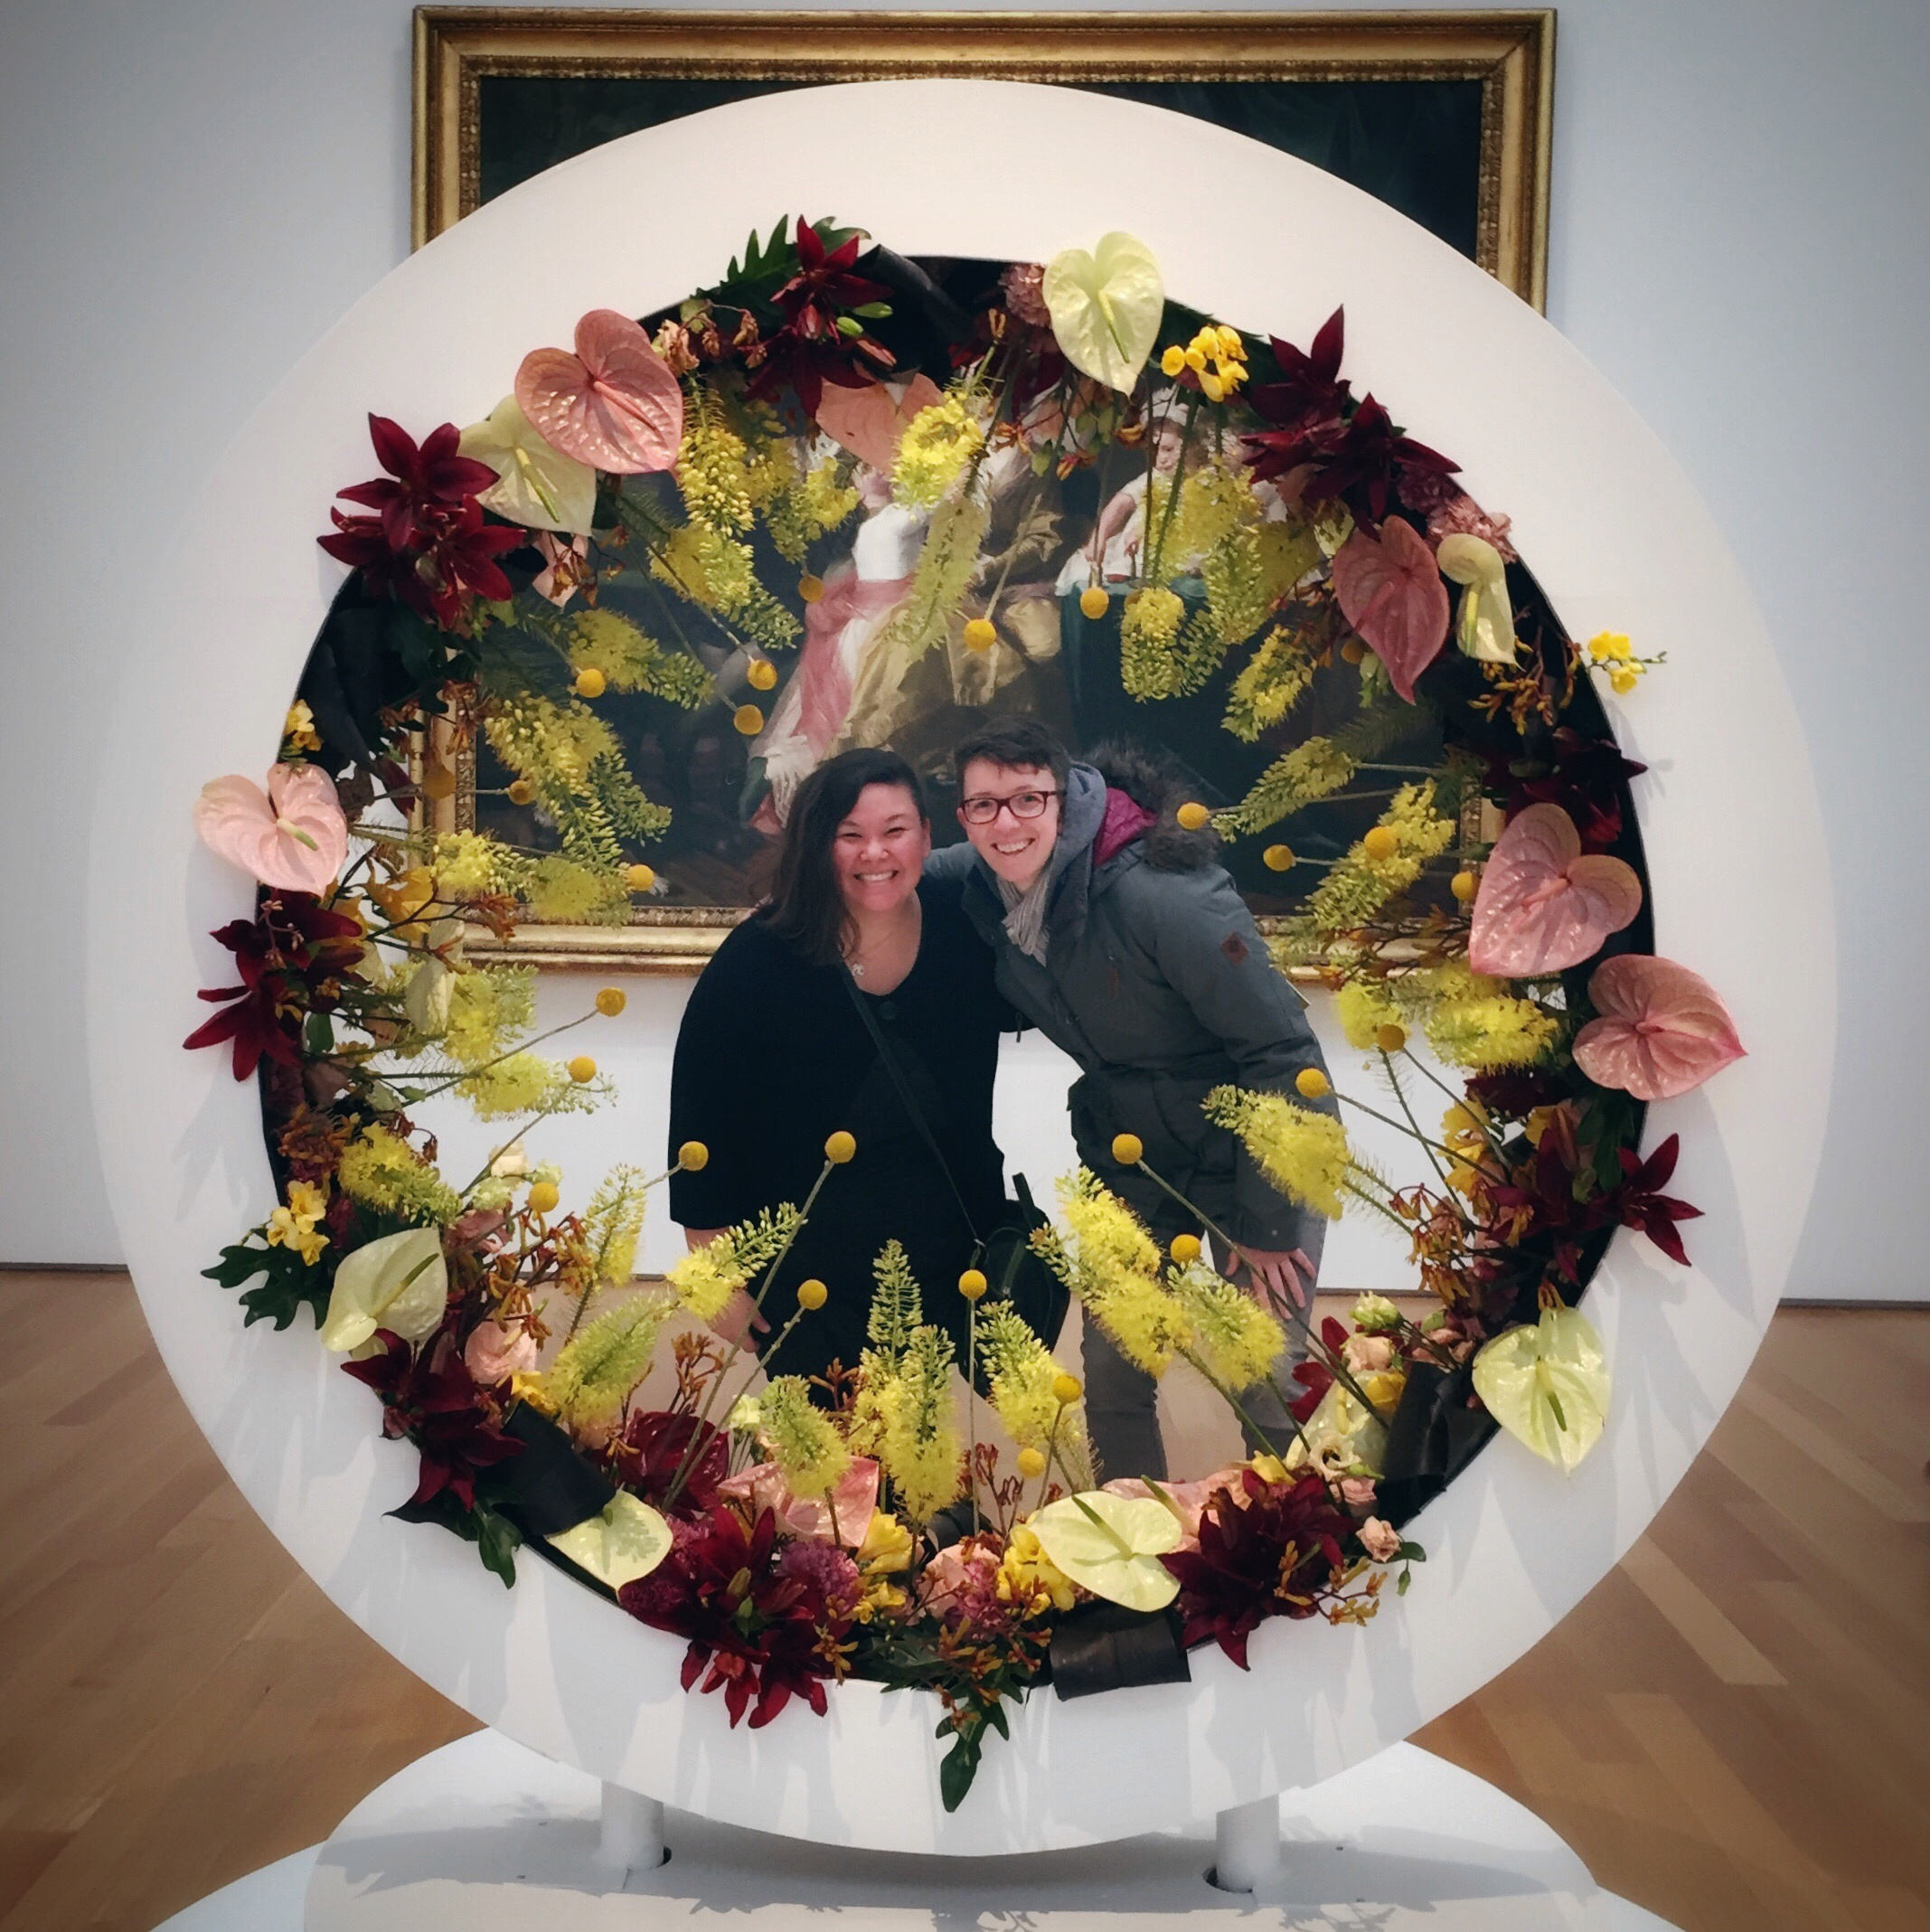 Art in Bloom, North Carolina Museum of Art. March 2018.